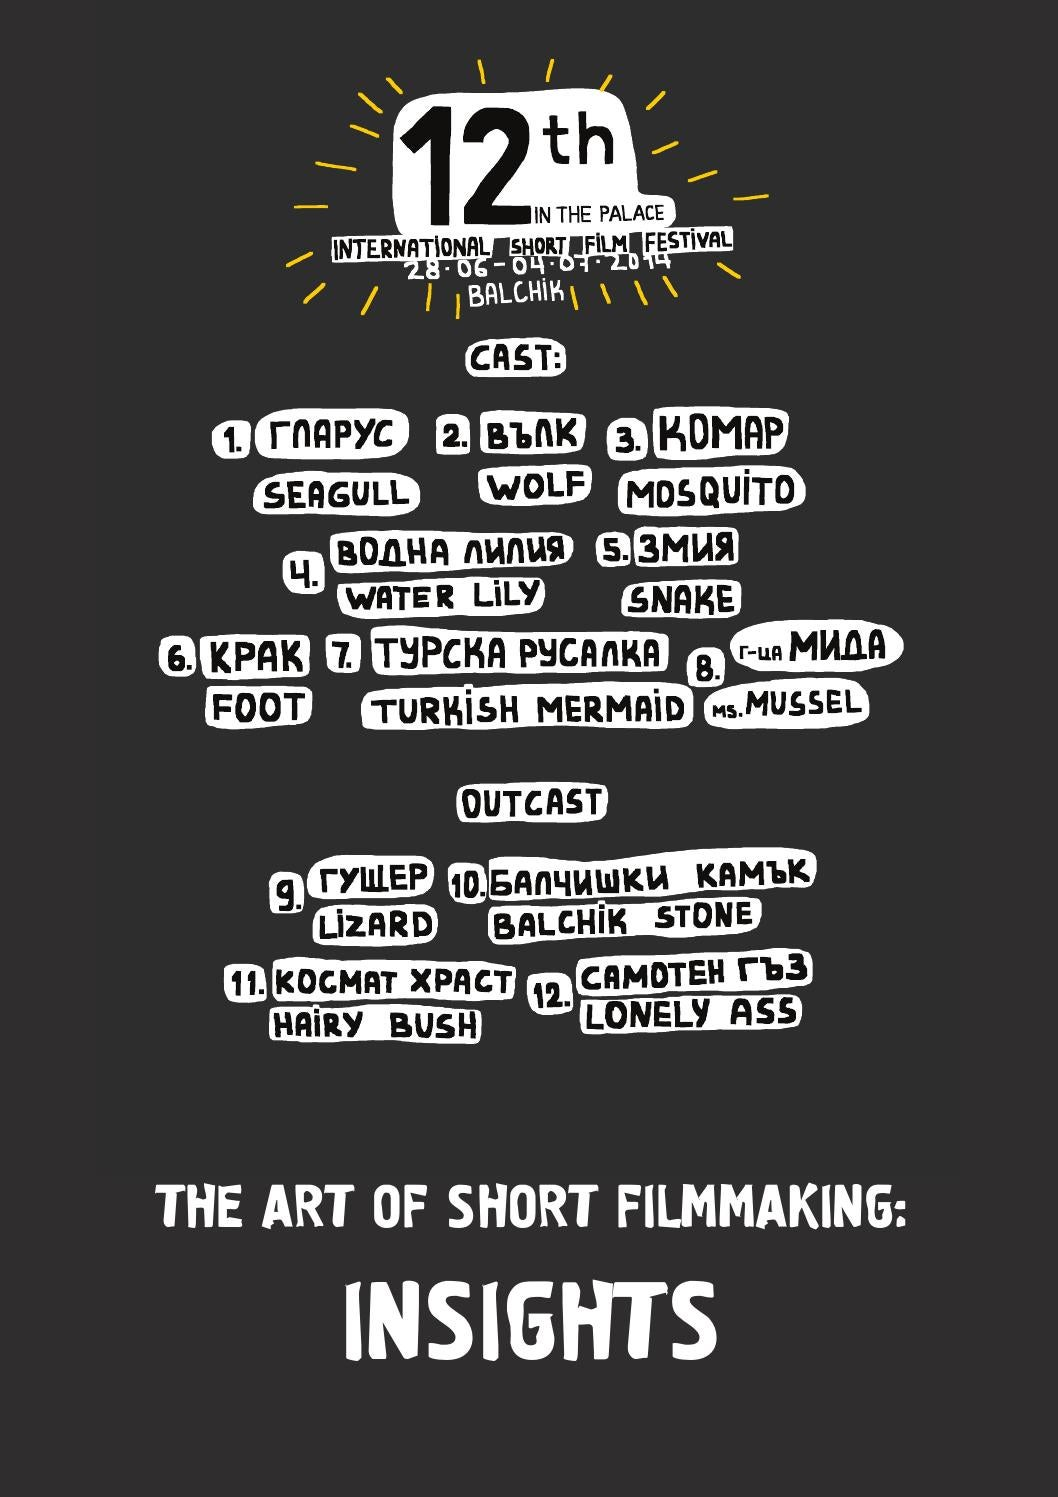 The Art of Short Filmmaking: INSIGHTS by IN THE PALACE ISFF